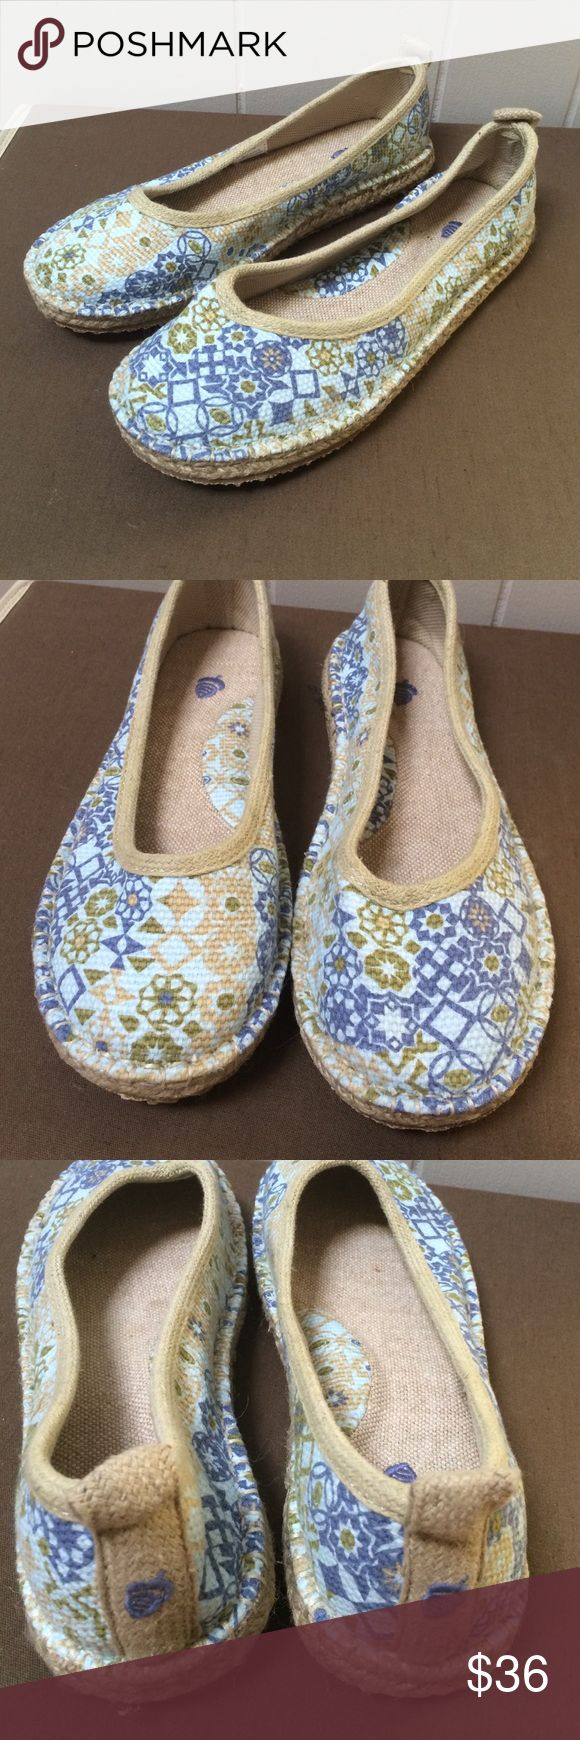 Acorn slip on shoes NWOB Super cute and comfortable! TTS! Acorn Shoes Flats & Loafers